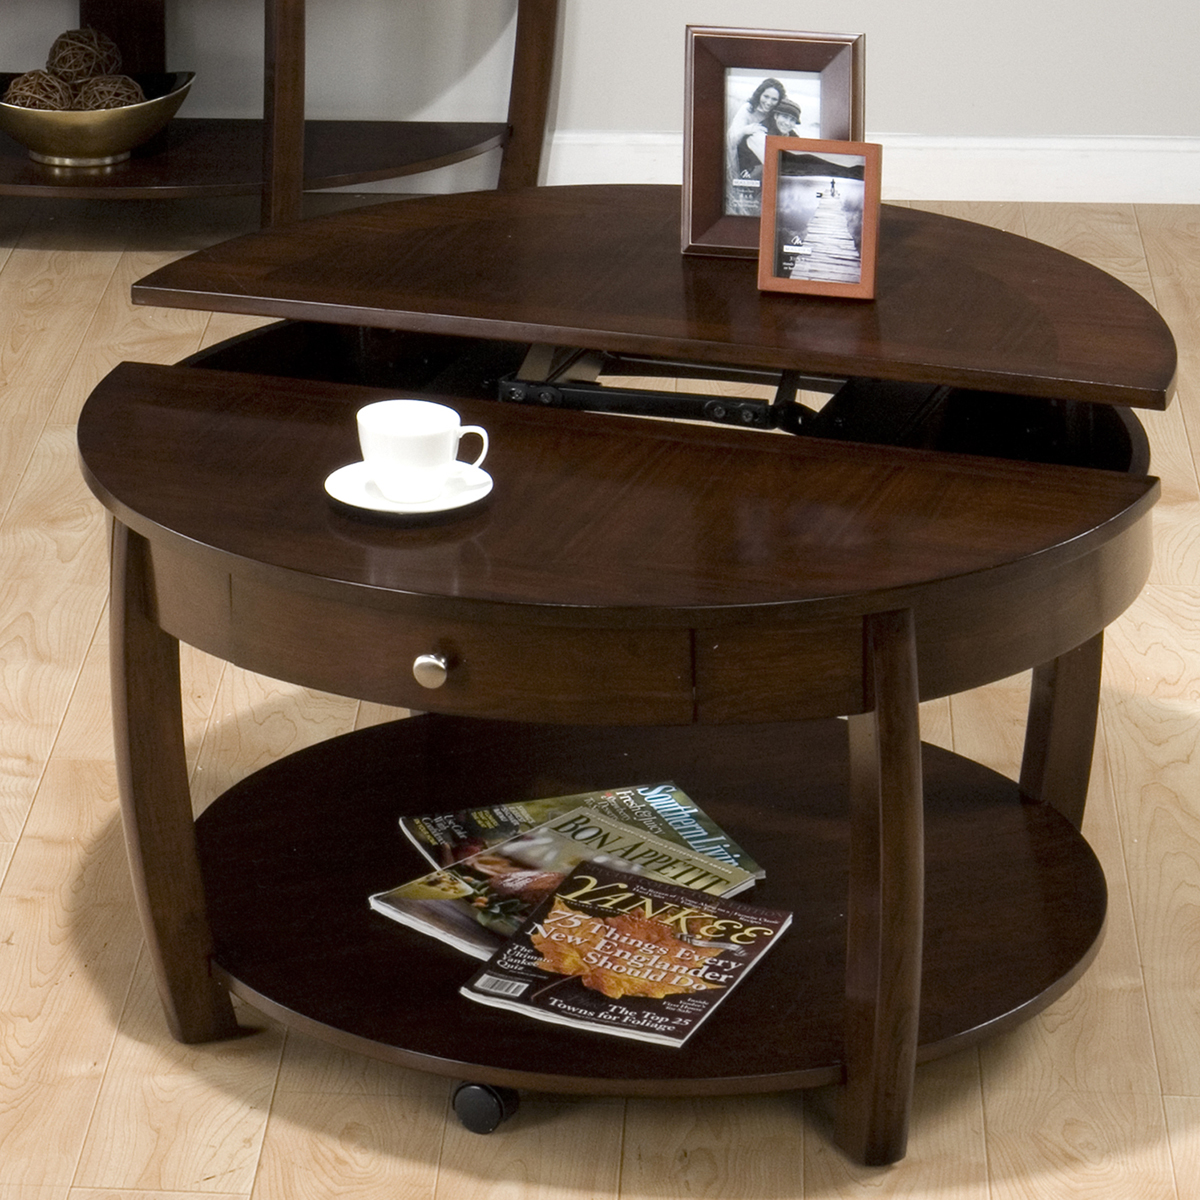 round-lift-top-coffee-table-round-coffee-table-with-drawer-interior-new-glass-drawer-coffee-table-design-furniture (Image 10 of 10)